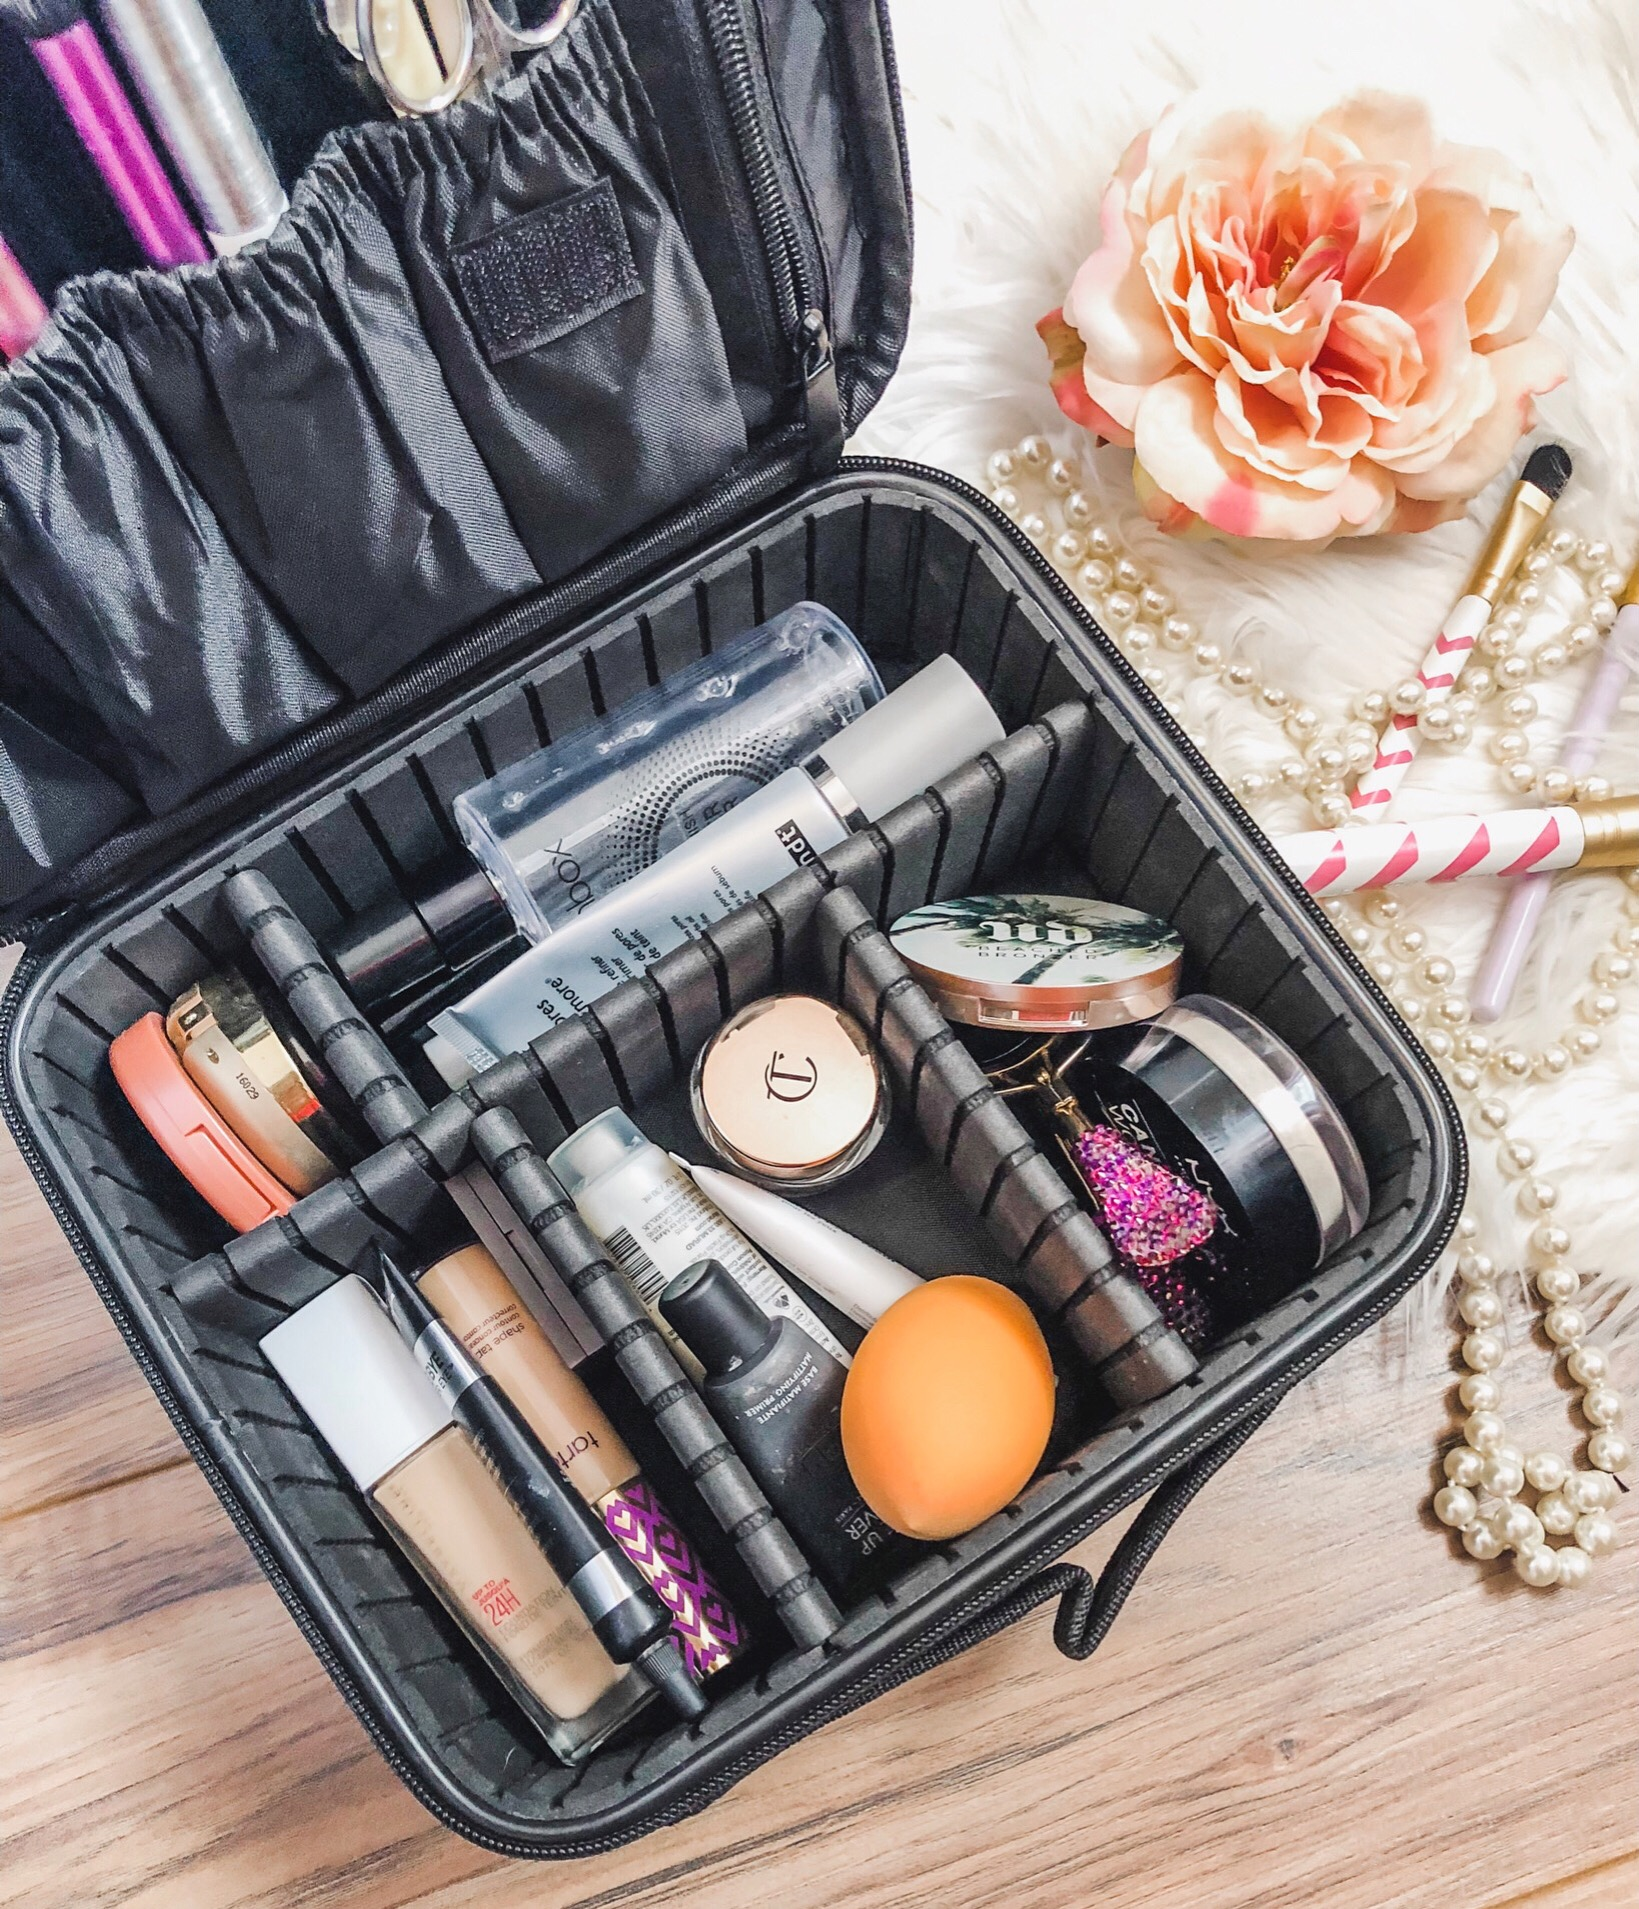 Amazon Must Haves // Recent Amazon Purchases // Travel Makeup Bag Essentials | Beauty With Lily